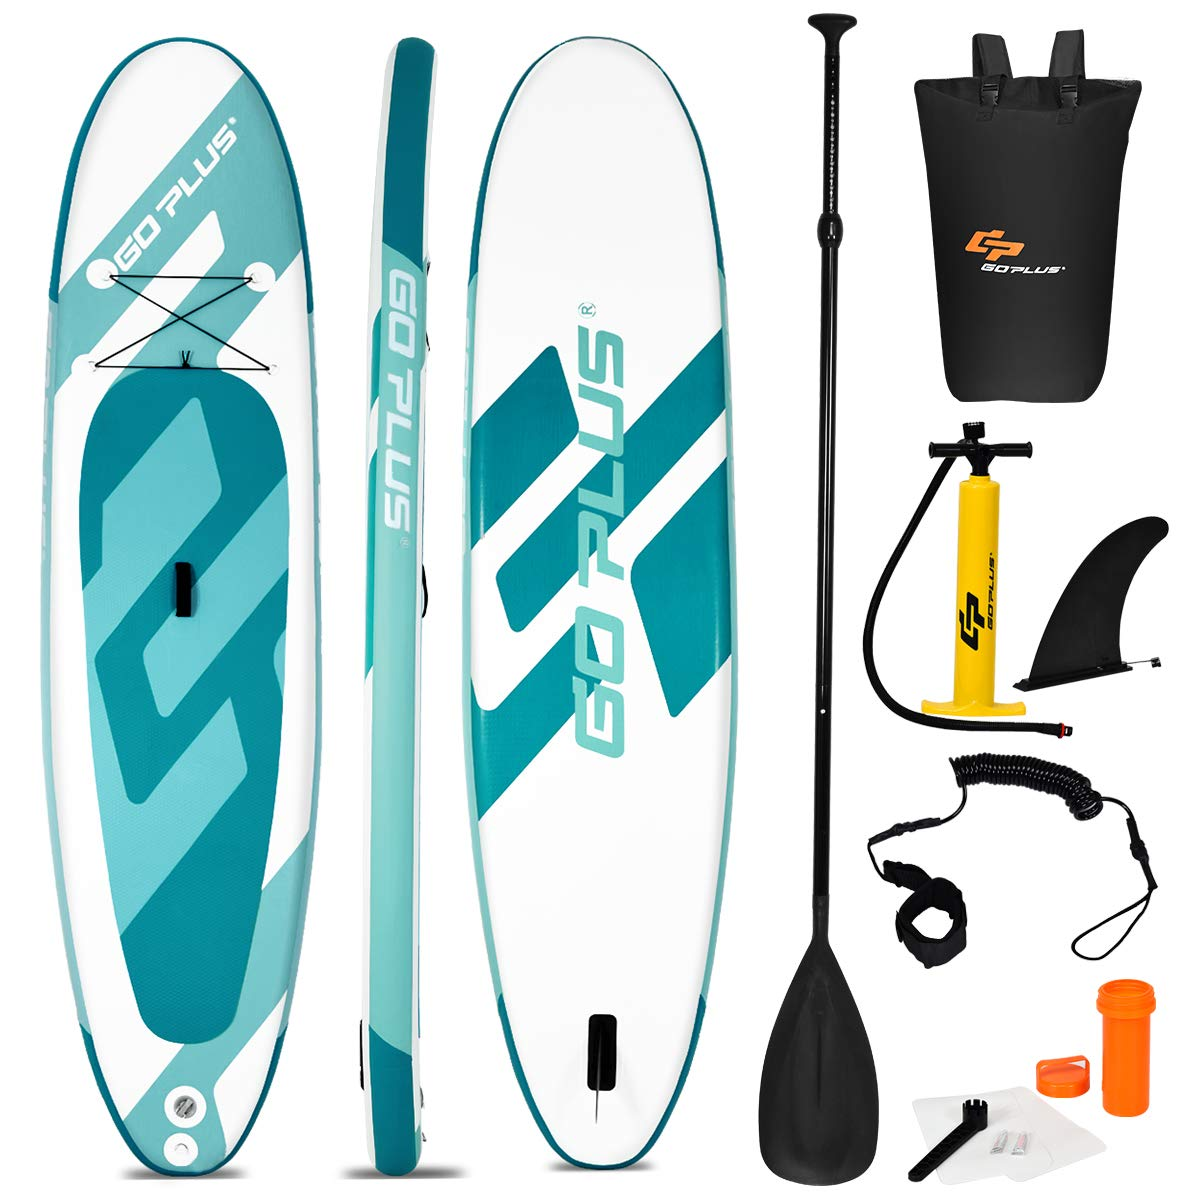 Goplus Inflatable Stand Up Paddle Board, 6'' Thick SUP with Accessory Pack, Adjustable Paddle, Carry Bag, Bottom Fin, Hand Pump, Non-Slip Deck, Leash, Repair Kit (Green, 11FT) by Goplus